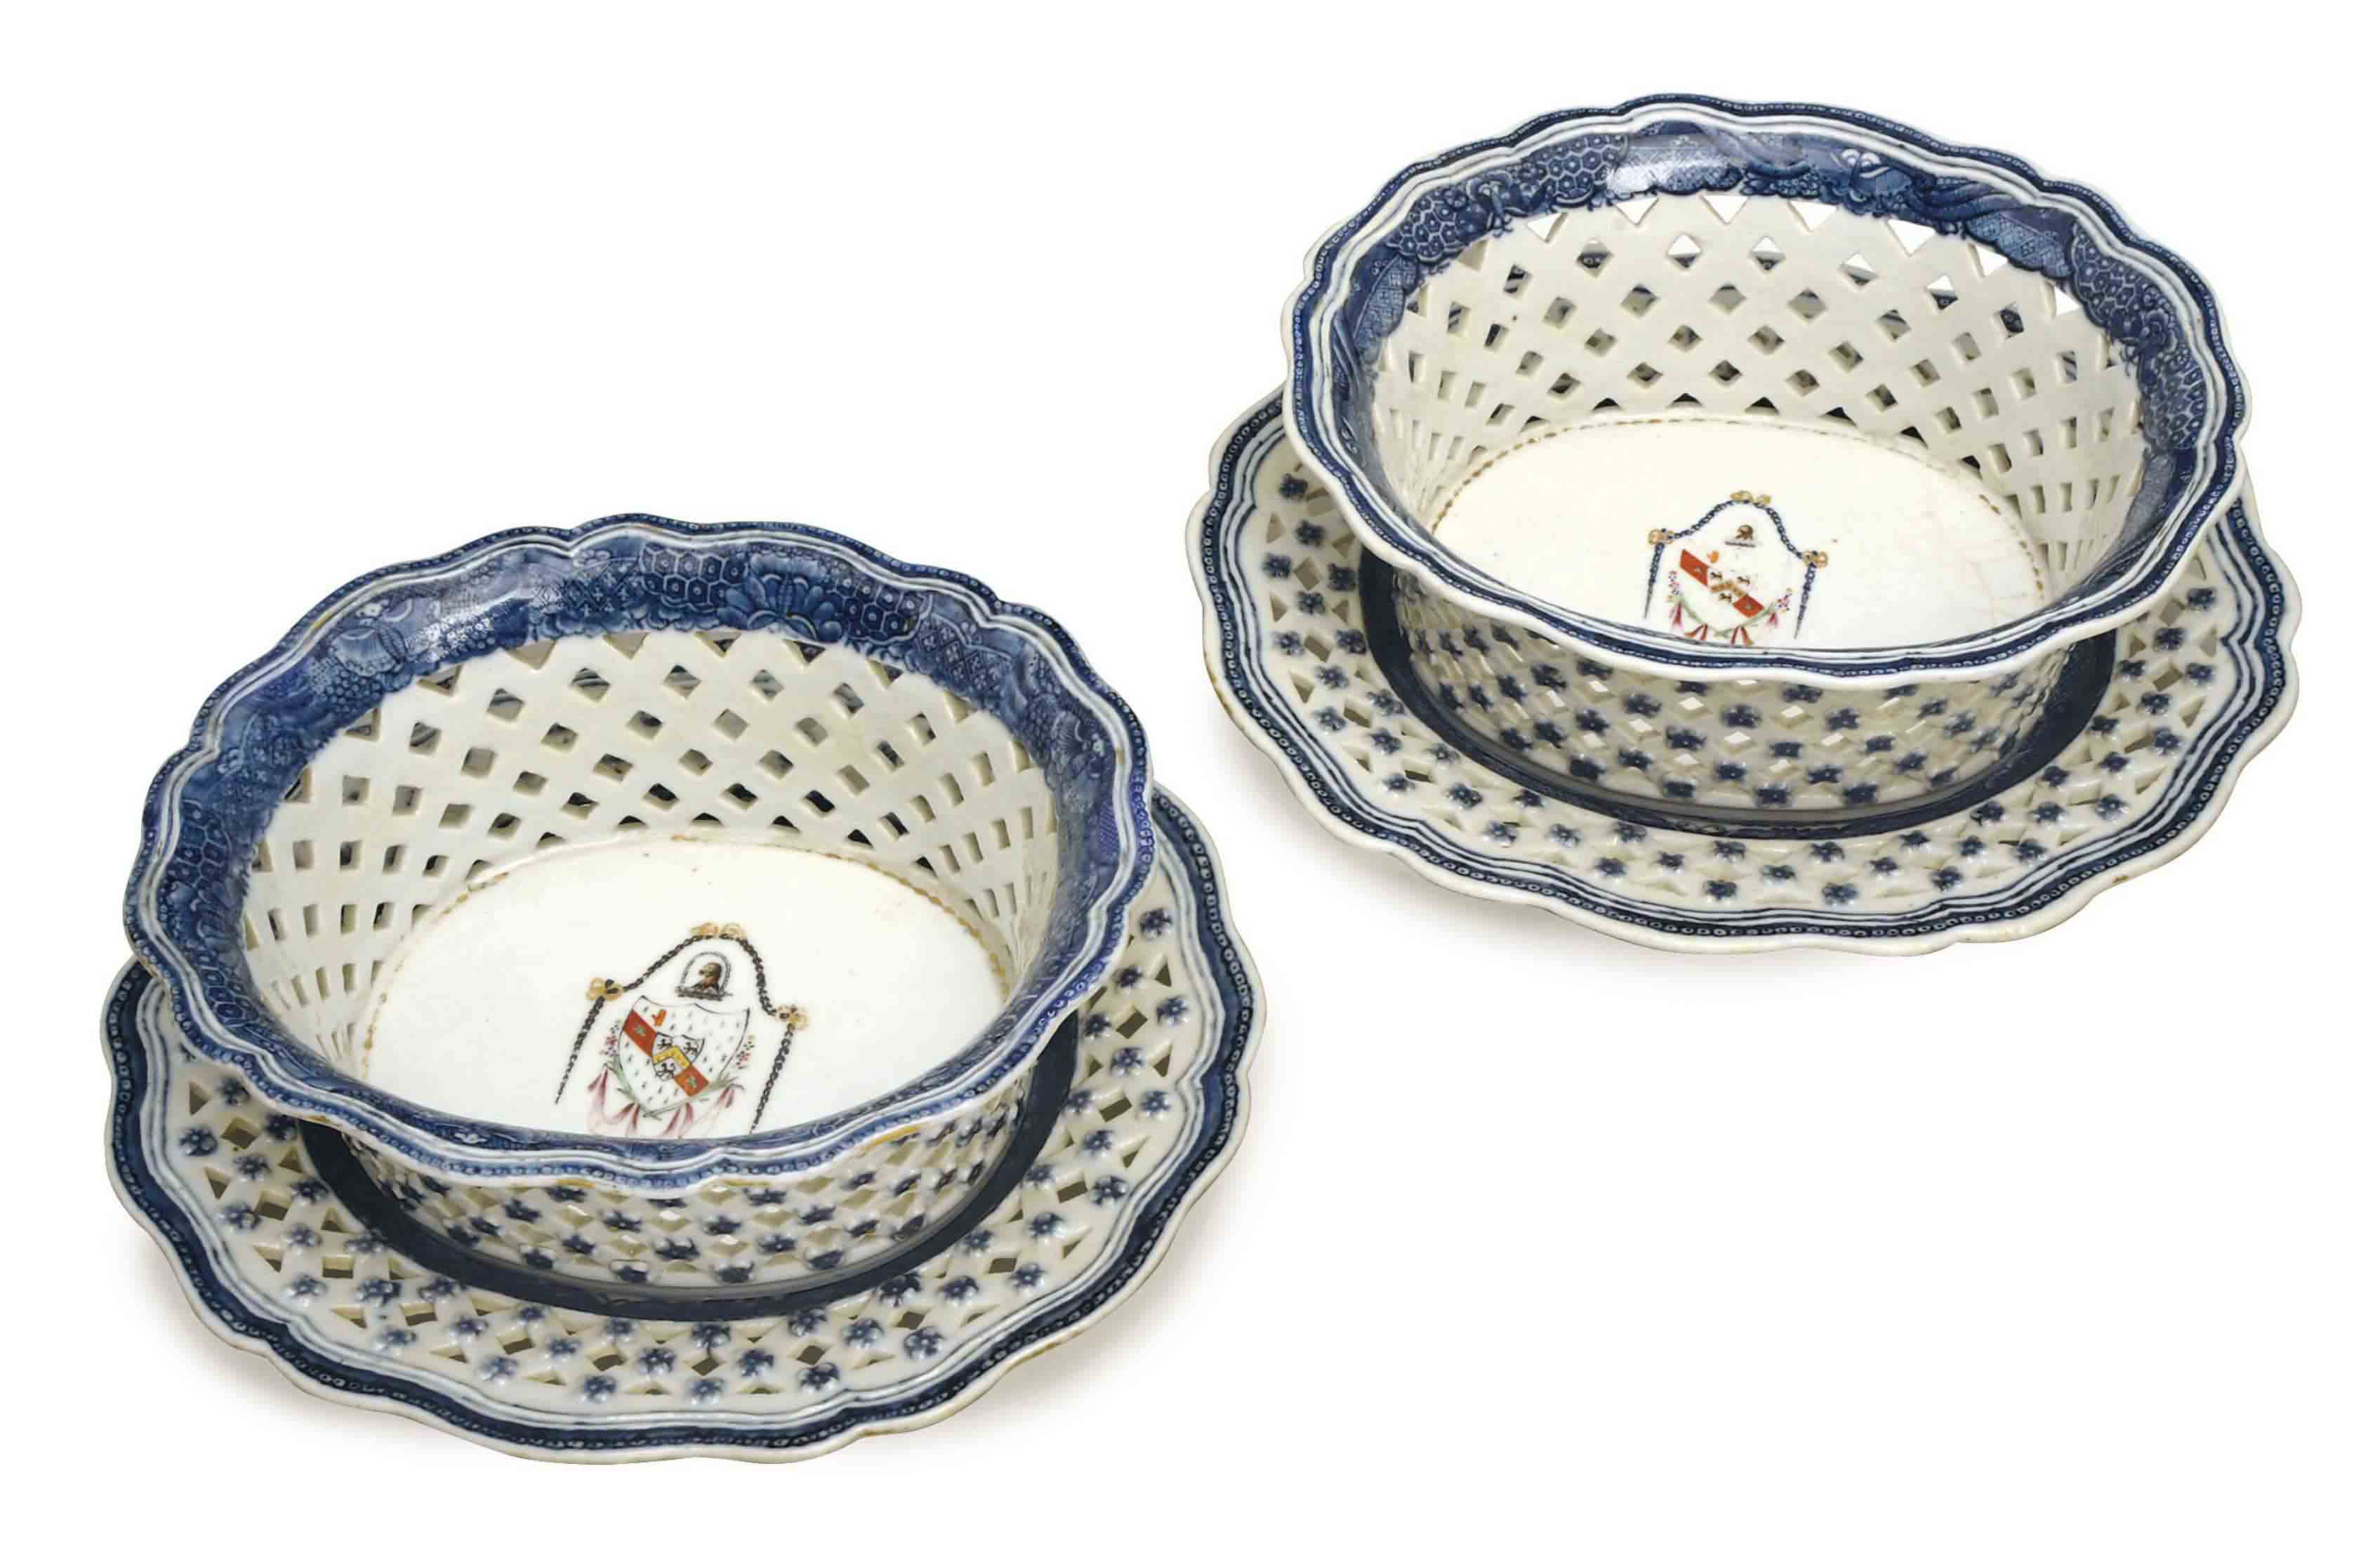 A PAIR OF CHINESE BLUE AND WHITE ARMORIAL BASKETS AND STANDS,